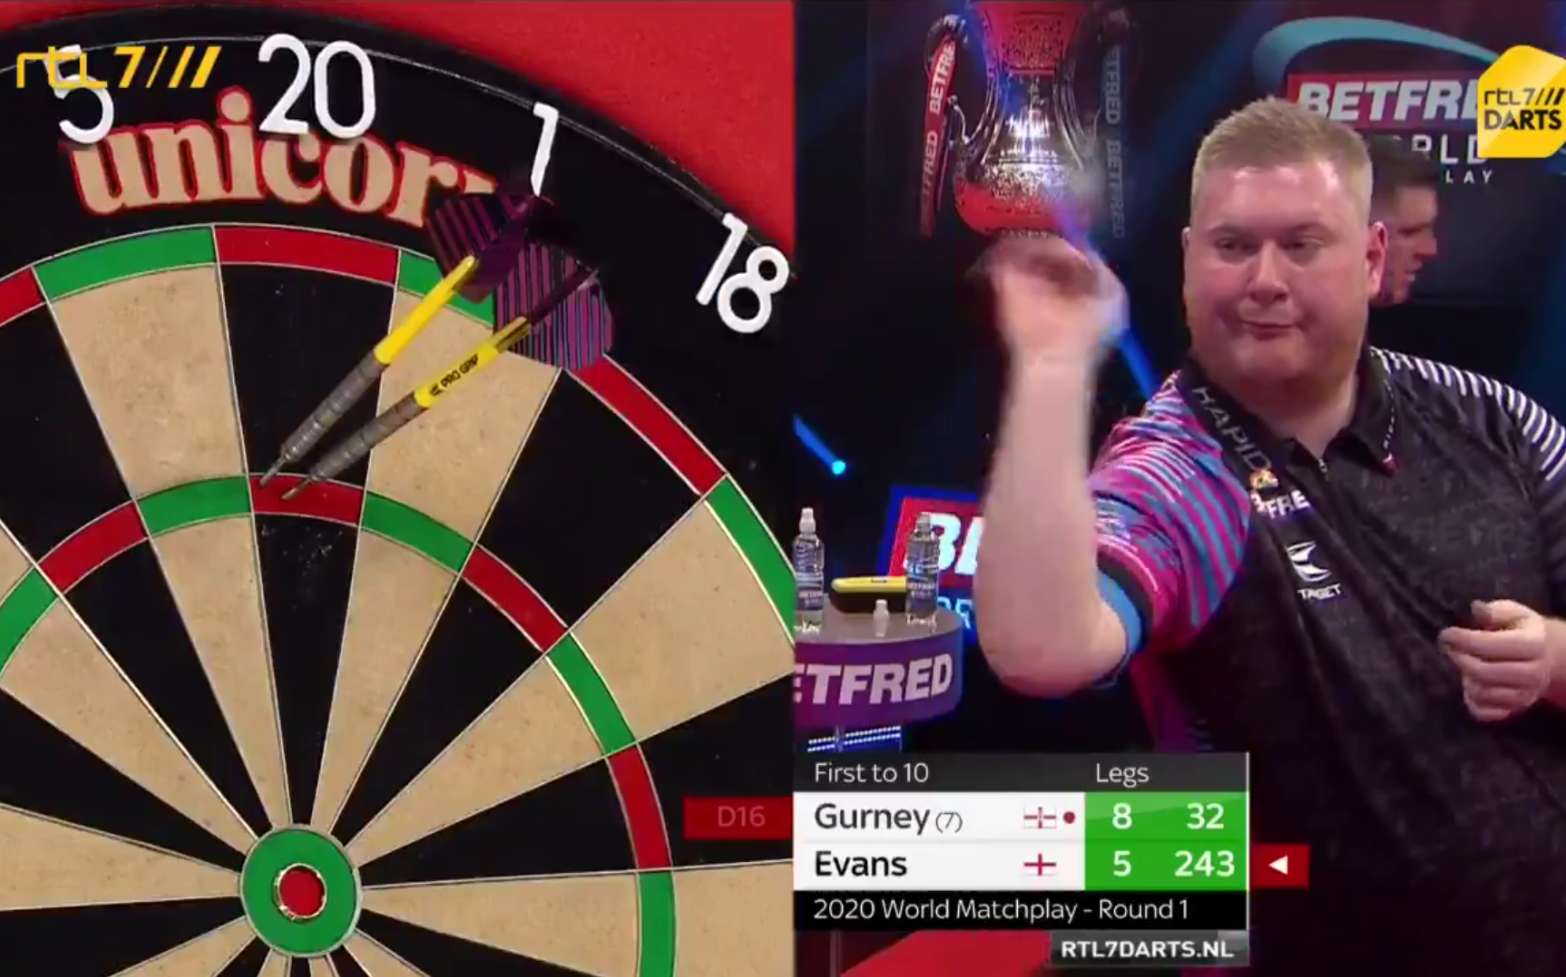 VIDEO: Ricky Evans Hits Incredible Fast 180 In Just 2 Seconds